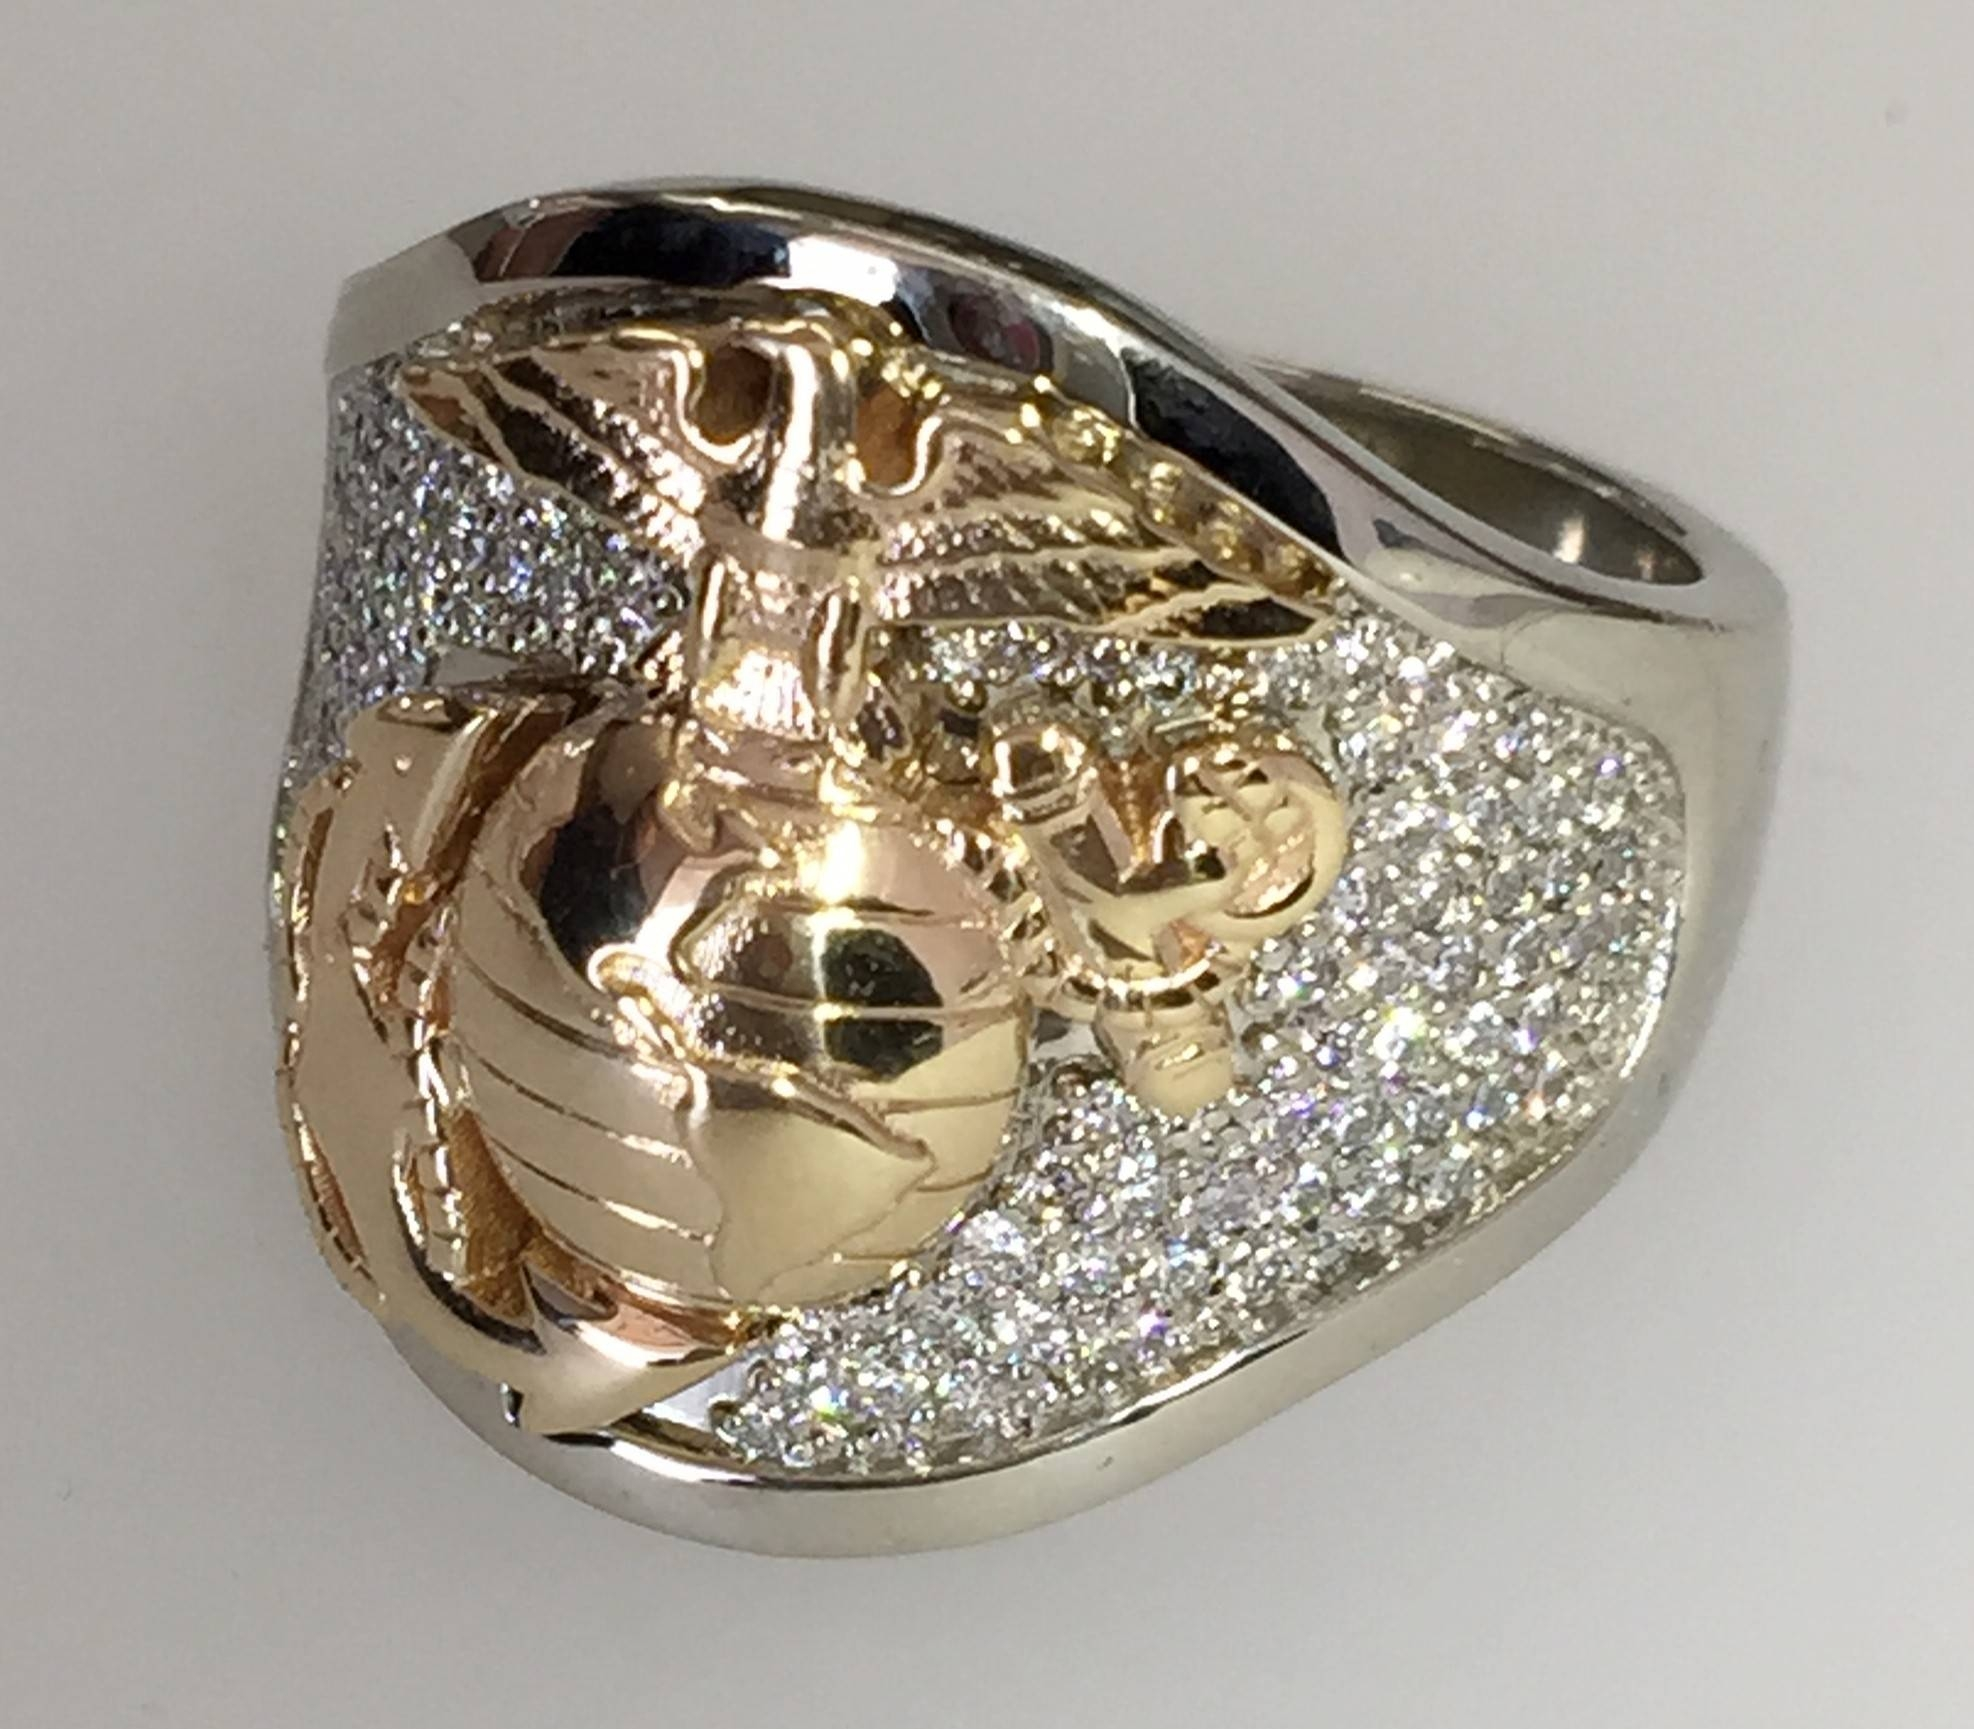 Custom Military Rings Designedusmc Veteran Owned Business And Within Marine Corps Wedding Bands (View 14 of 15)